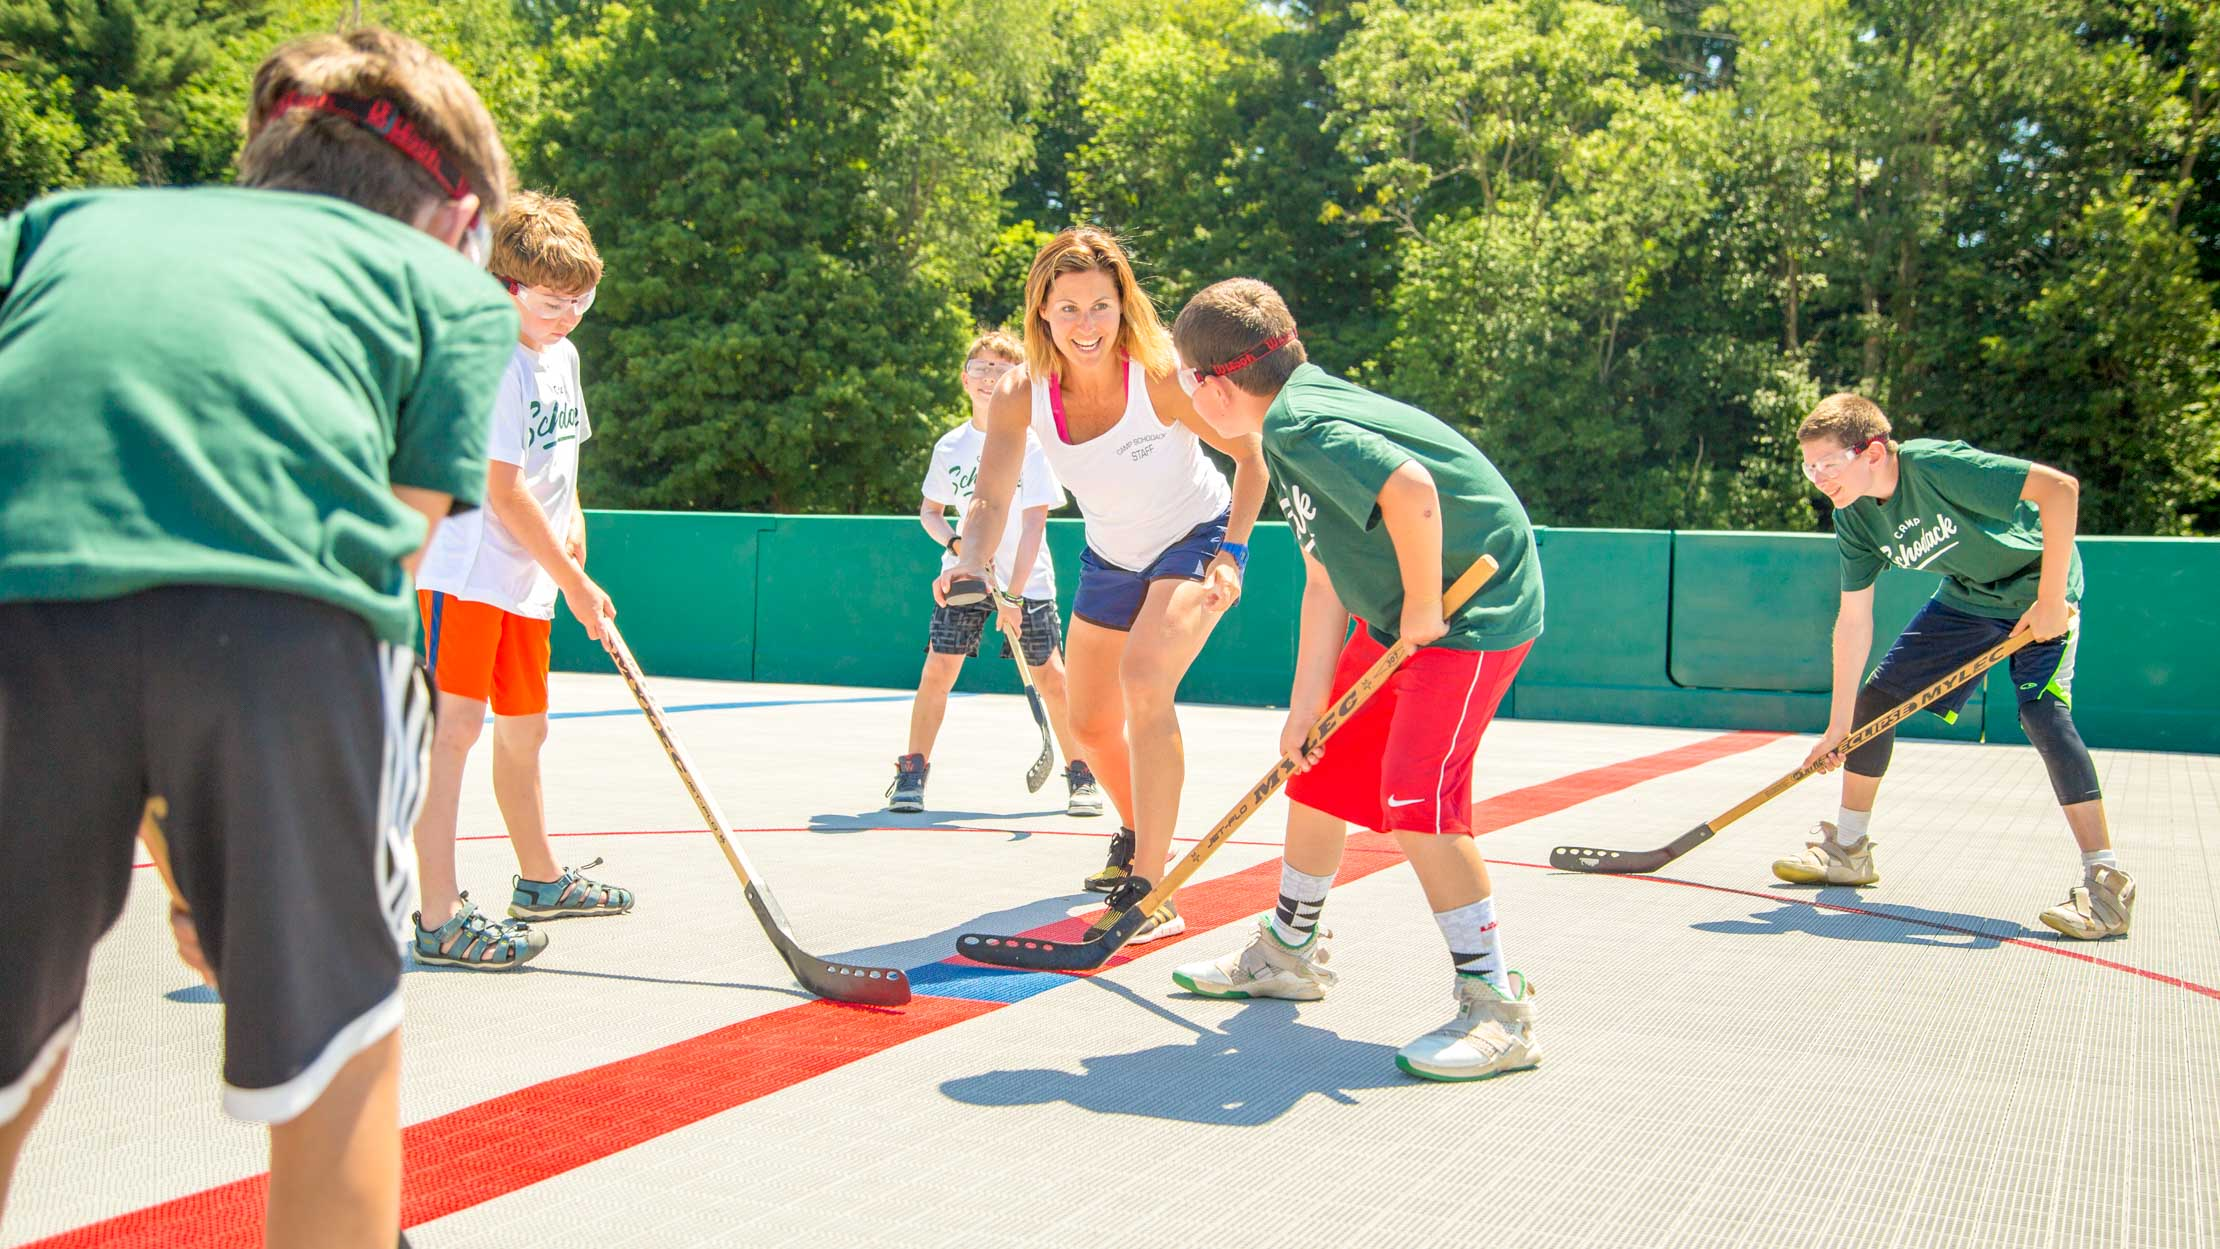 Staff member preps campers for street hockey game